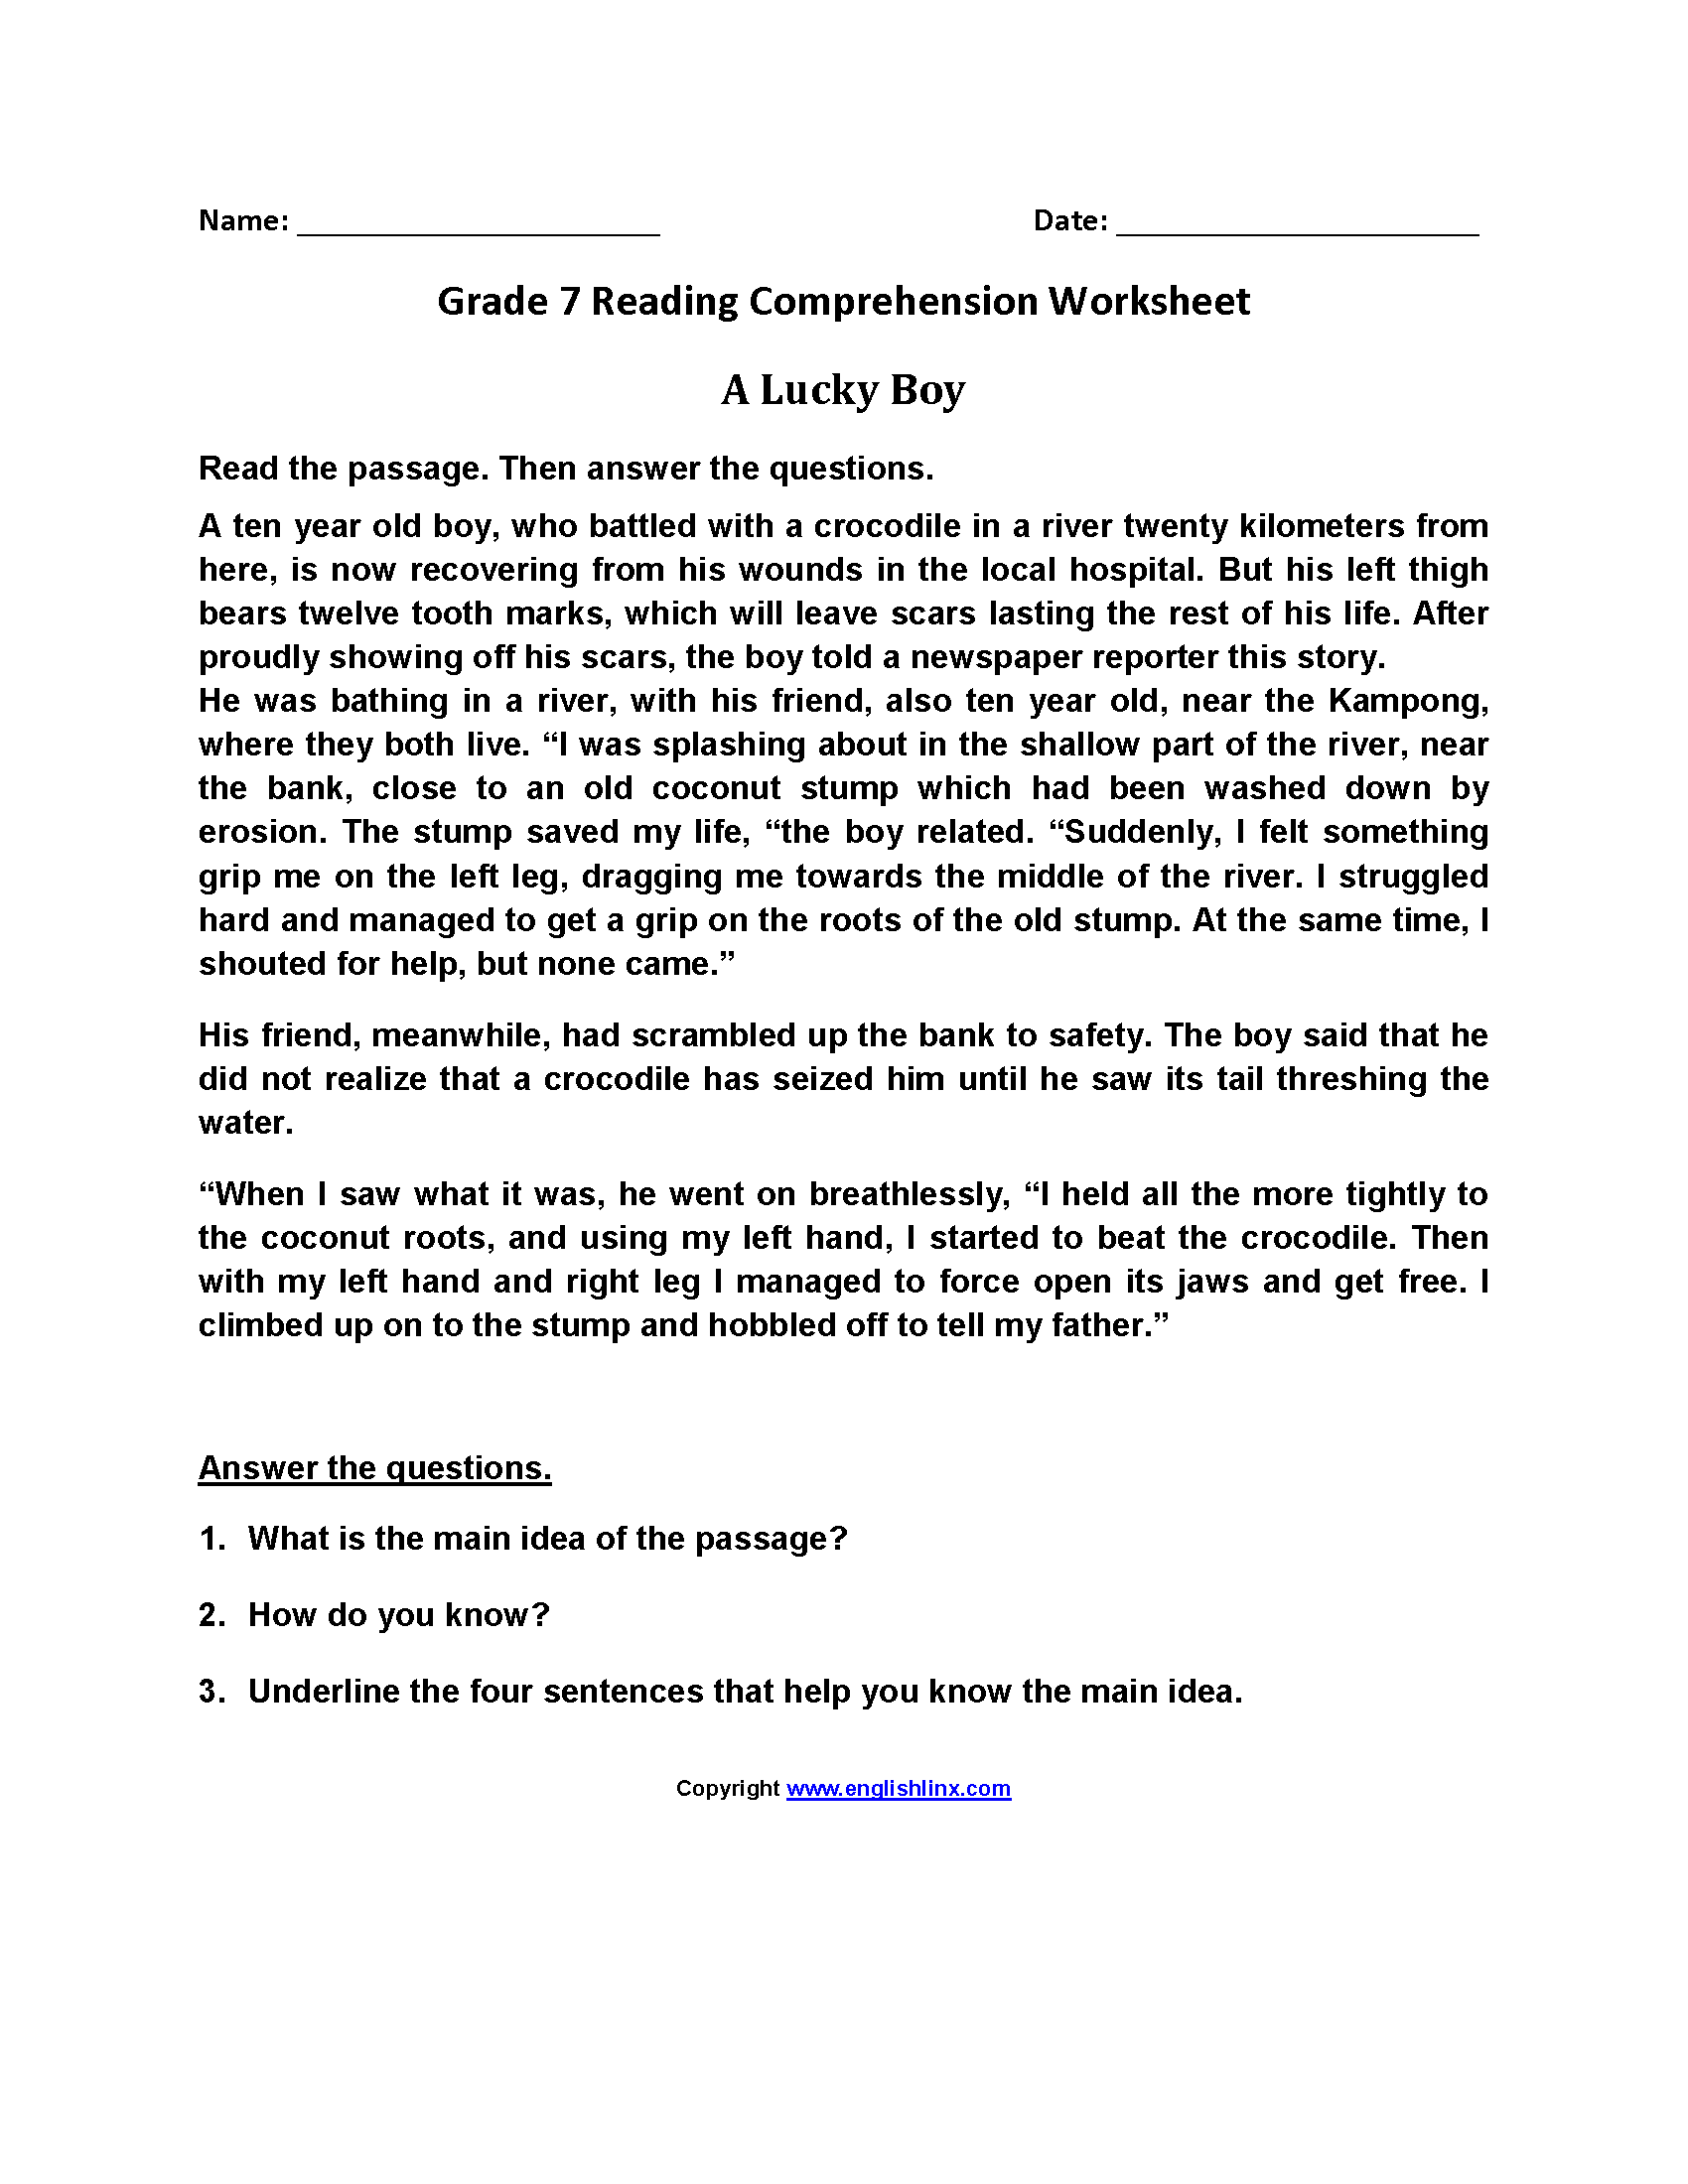 Worksheets French Reading Comprehension Worksheets reading worksheets seventh grade worksheets